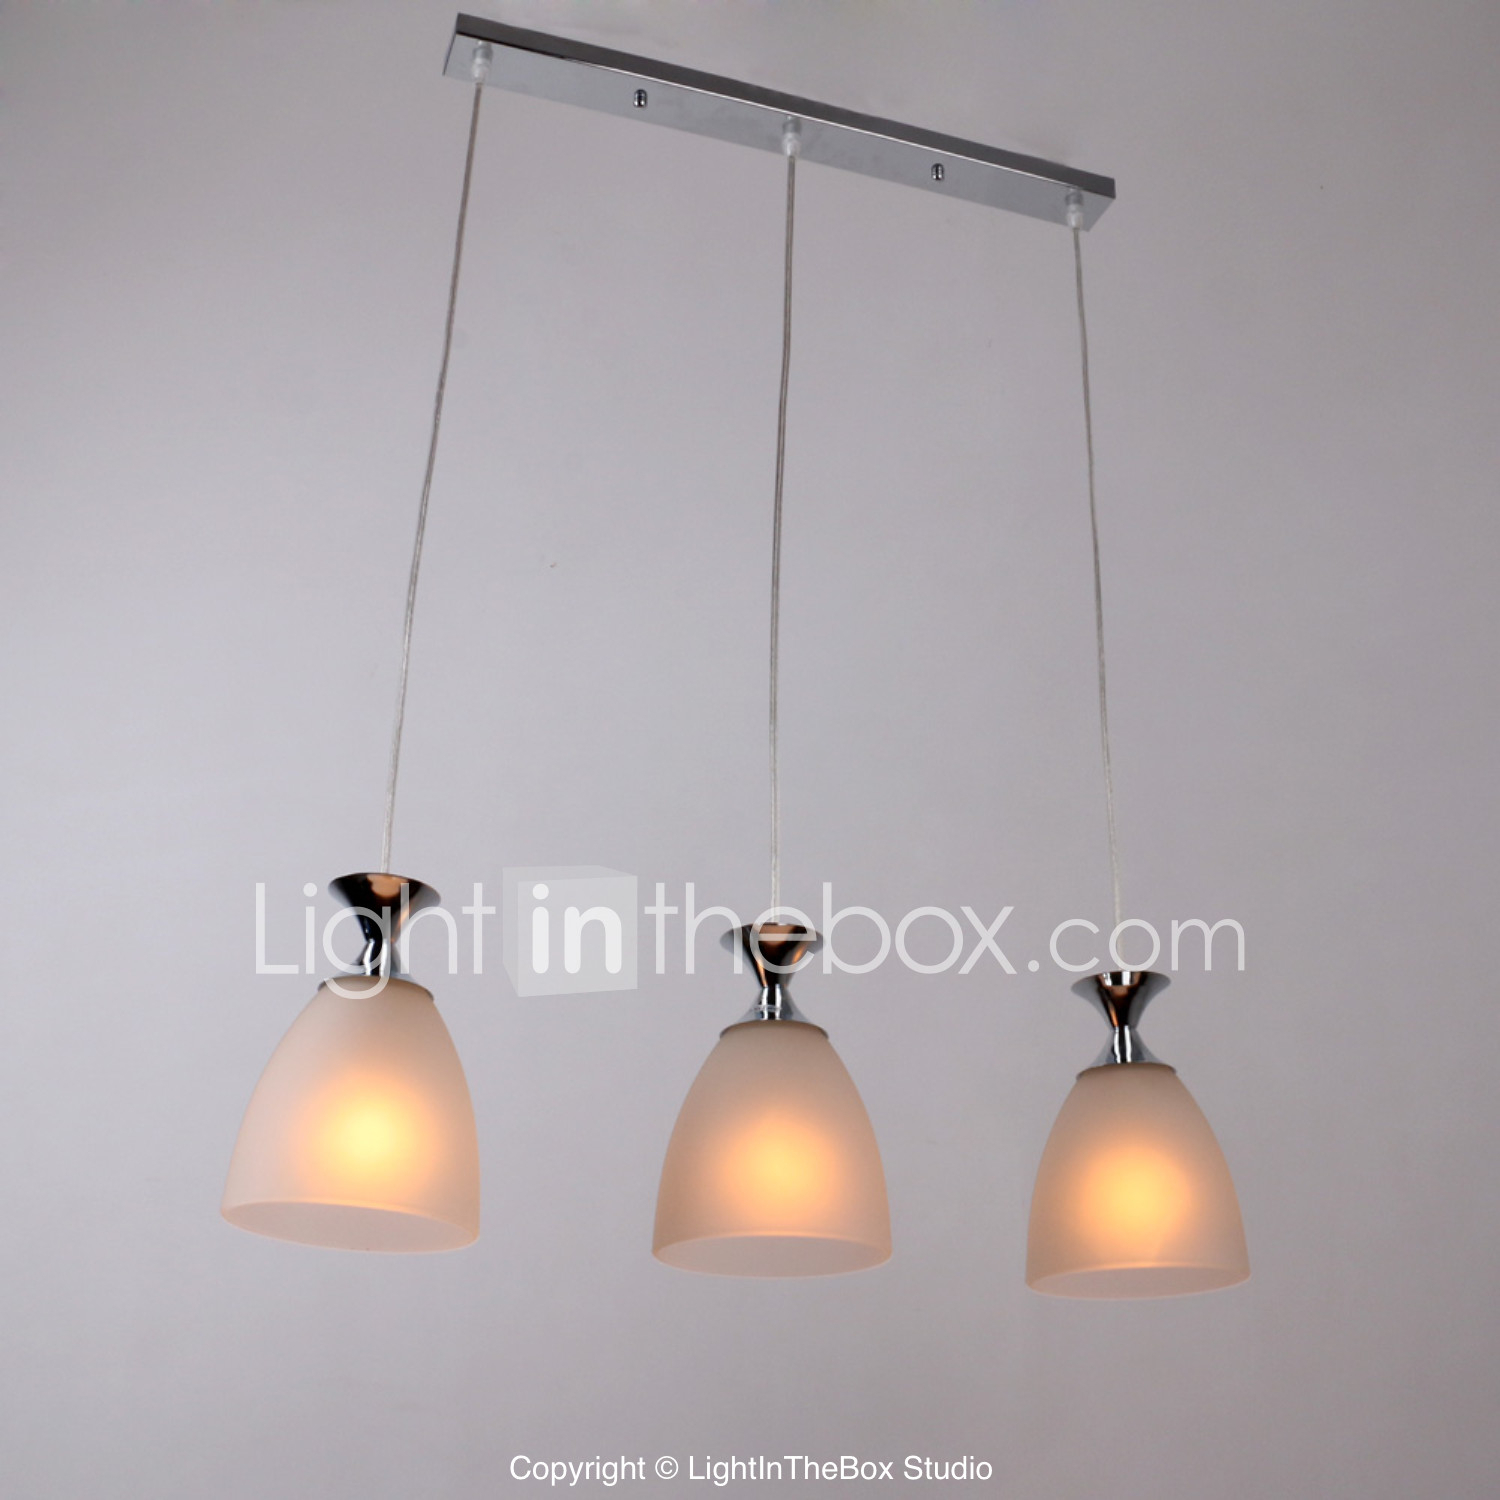 Brilight Cluster Pendant Light Ambient Light Chrome Glass Pertaining To Bryker 1 Light Single Bulb Pendants (View 15 of 30)